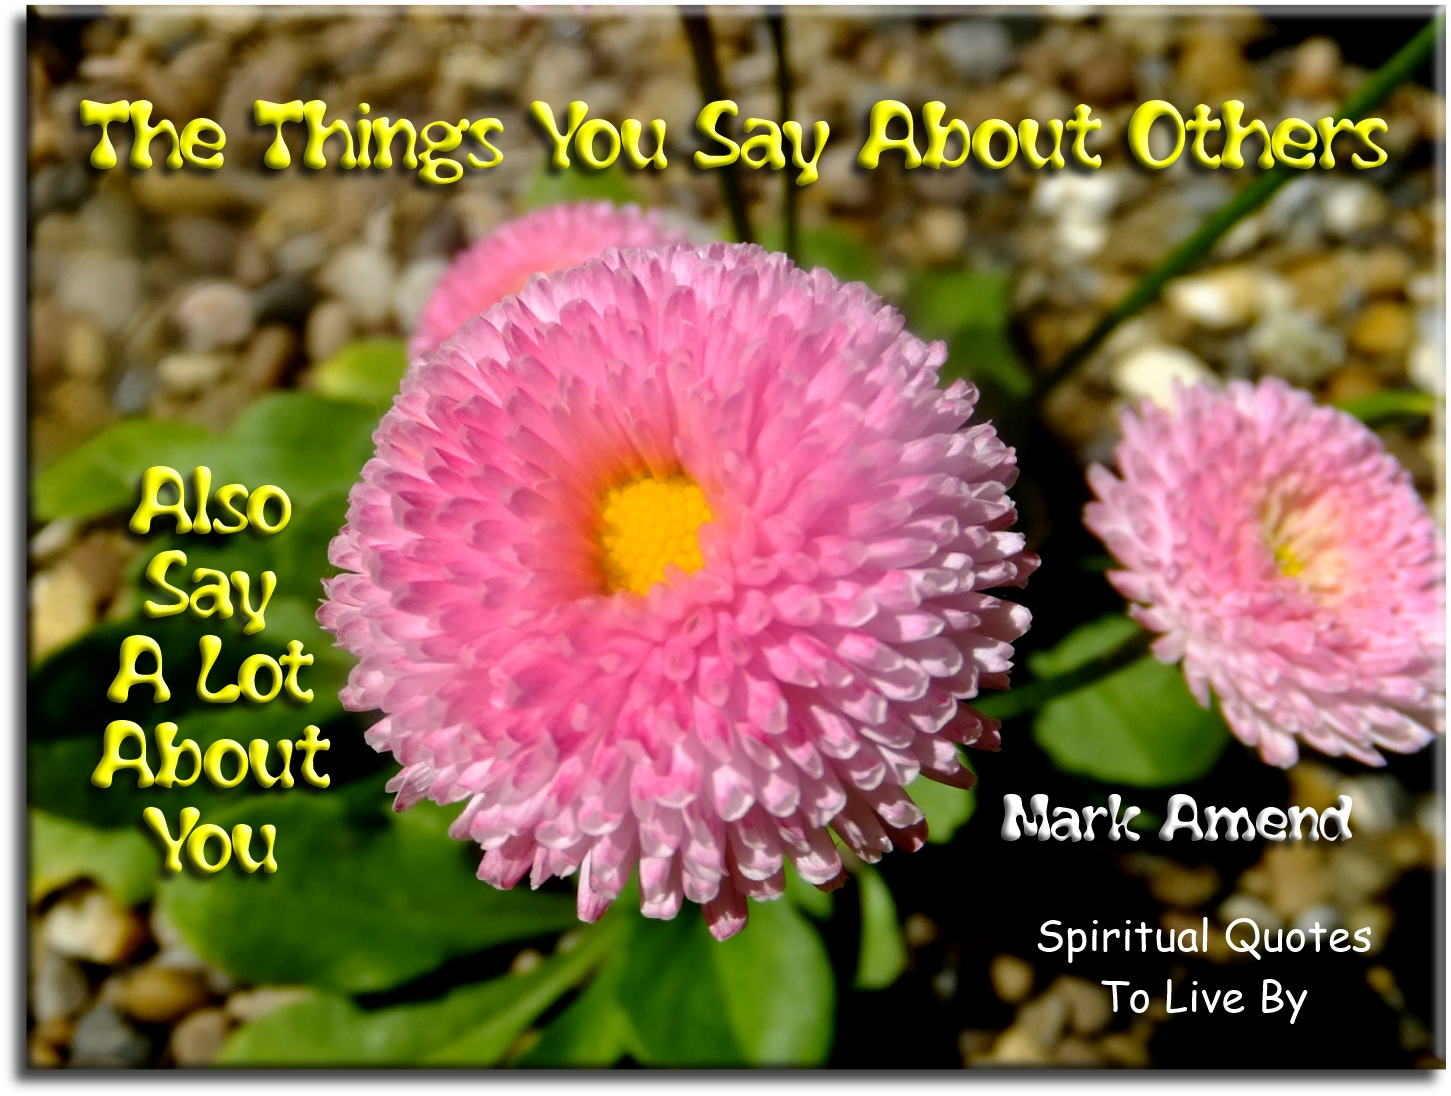 Mark Amend quote: The things you say about others, also say a lot about you.- Spiritual Quotes To Live By